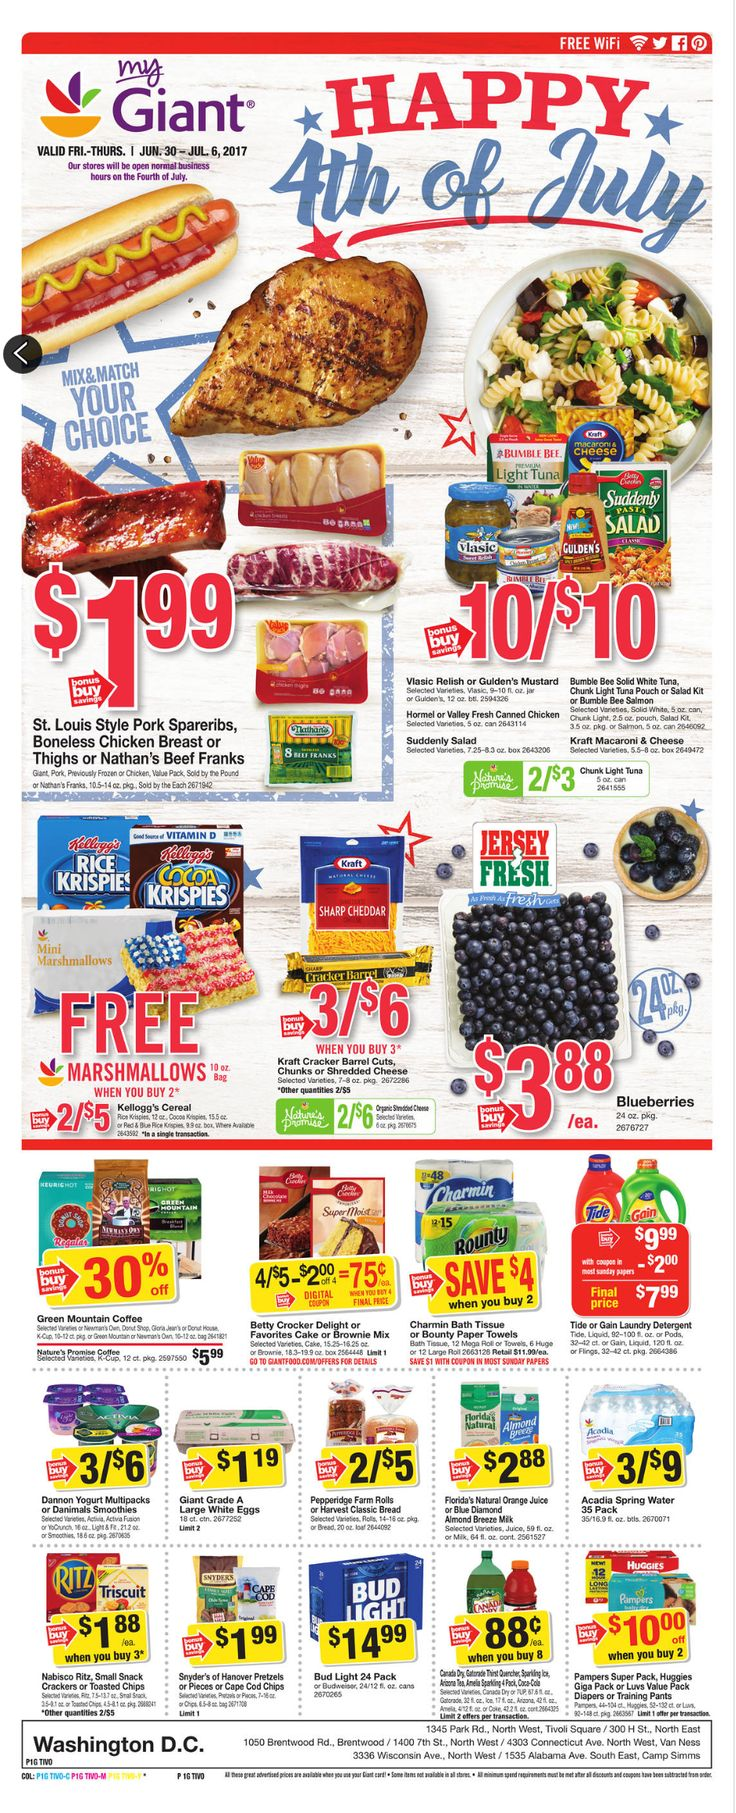 Giant Food Weekly Ad June 30 - July 6, 2017 - http://www.olcatalog.com/grocery/giant-food-weekly-ad.html